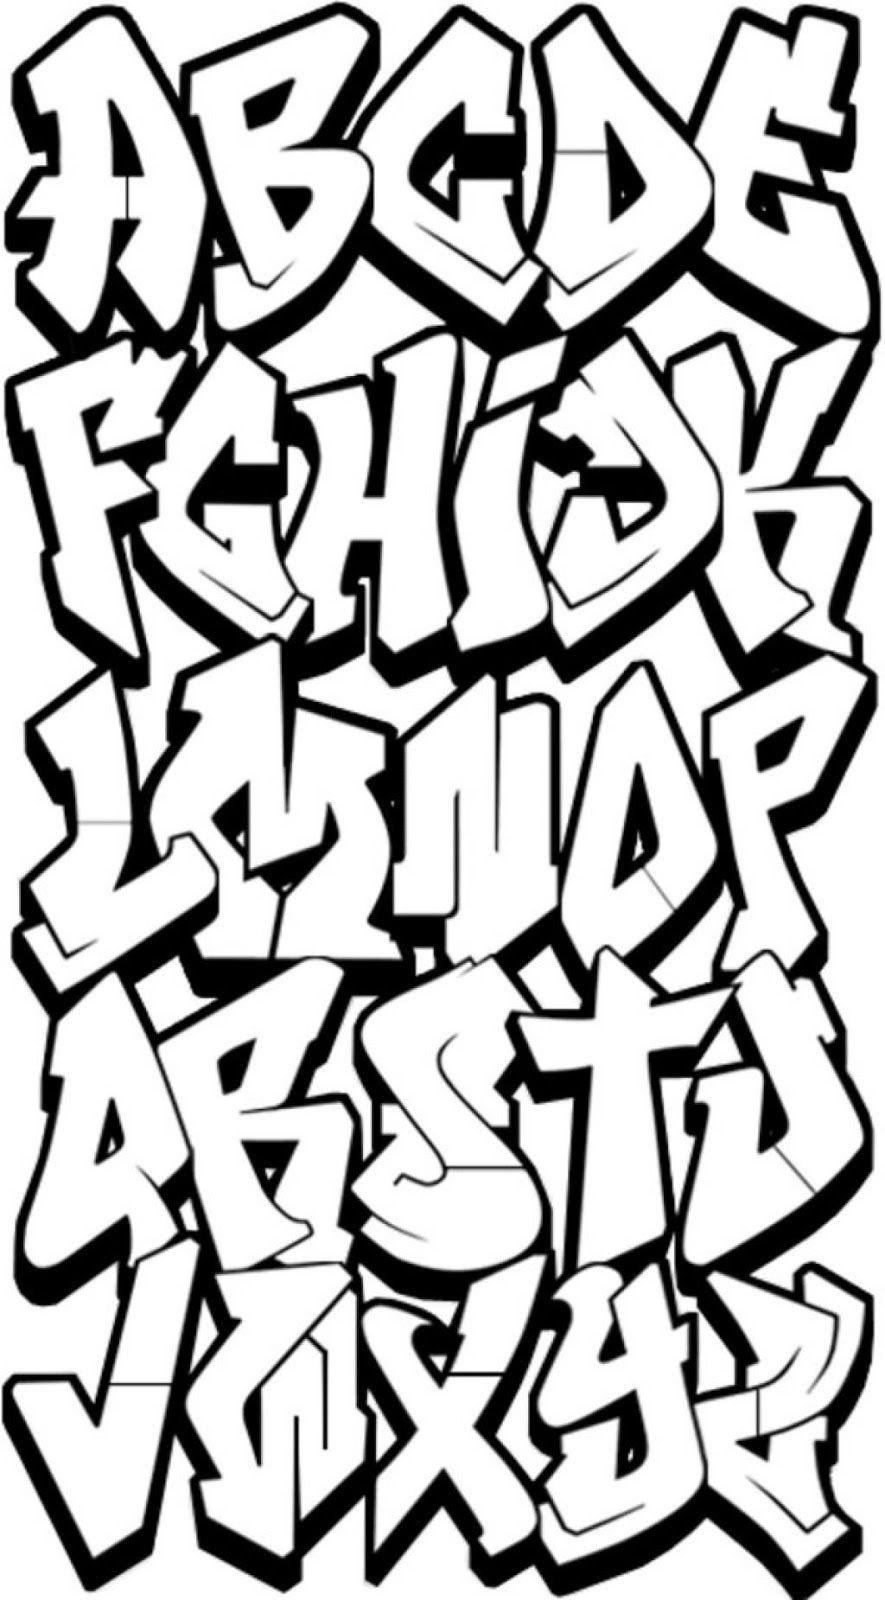 Cool easy to draw a to z graffiti graffiti collection